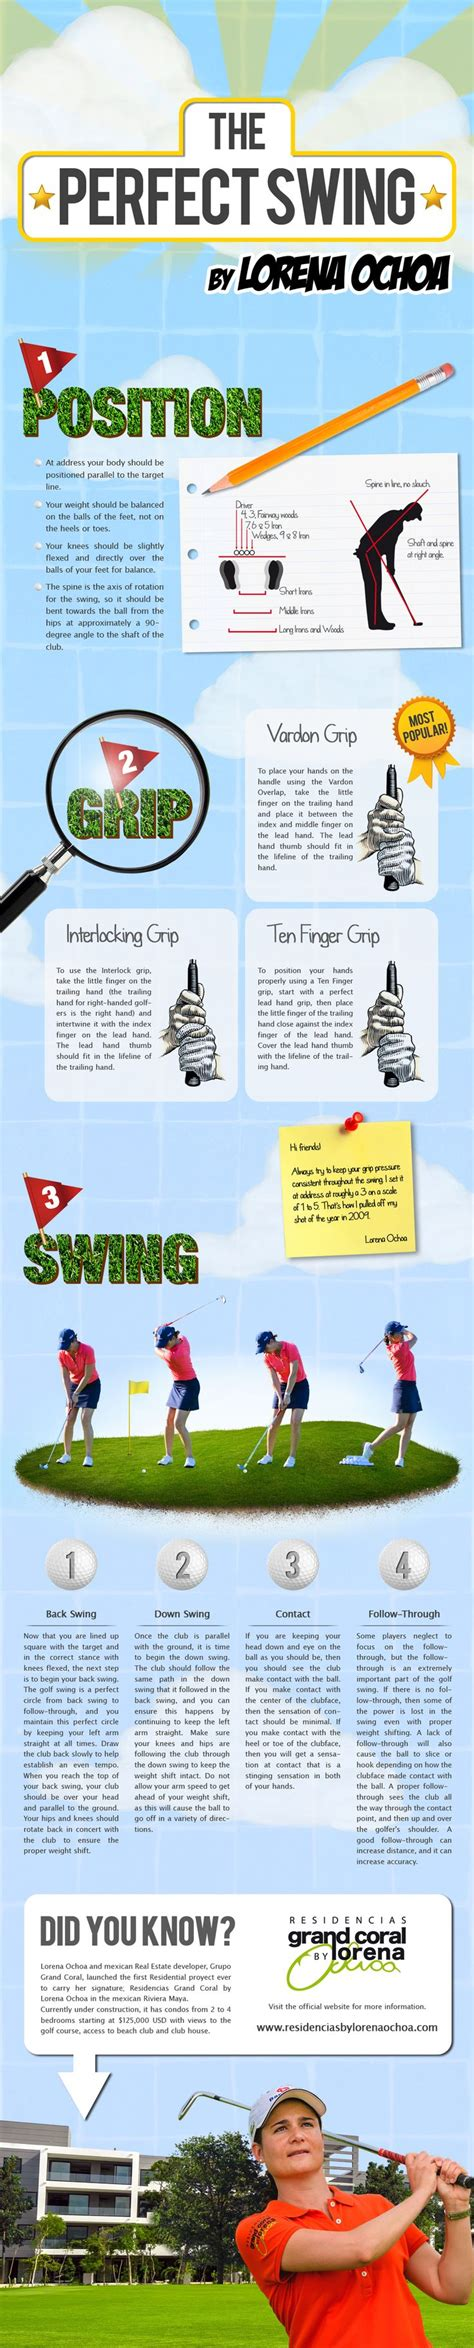 golf swing guide master your golf swing with this step by step guide